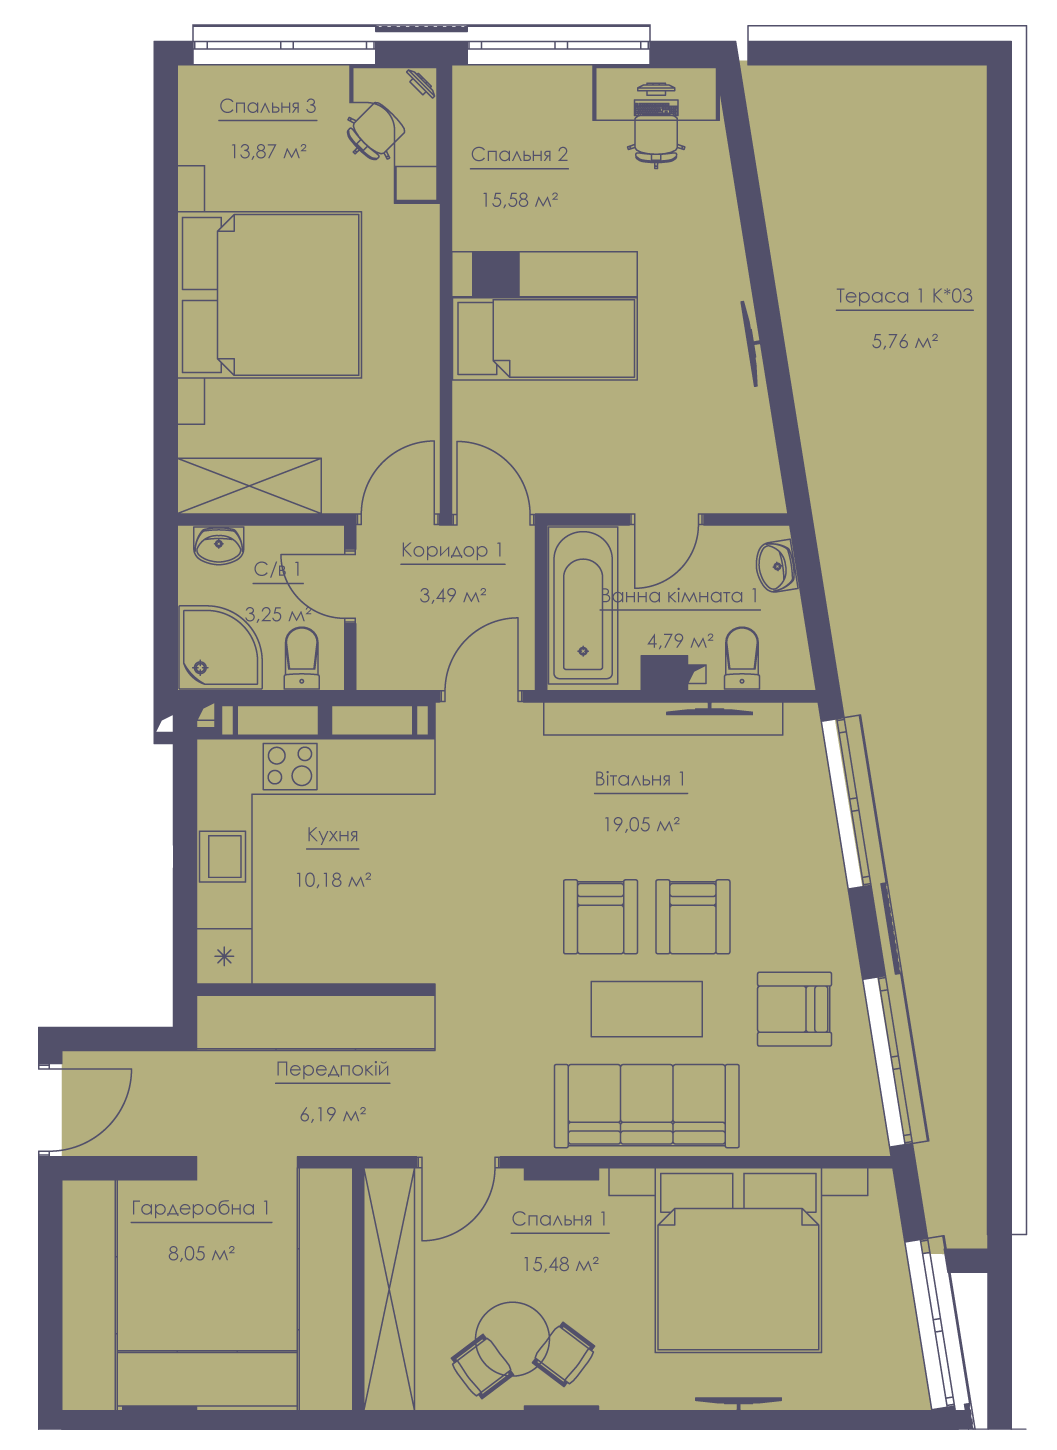 Apartment layout KV_90_4g_1_1_11-1